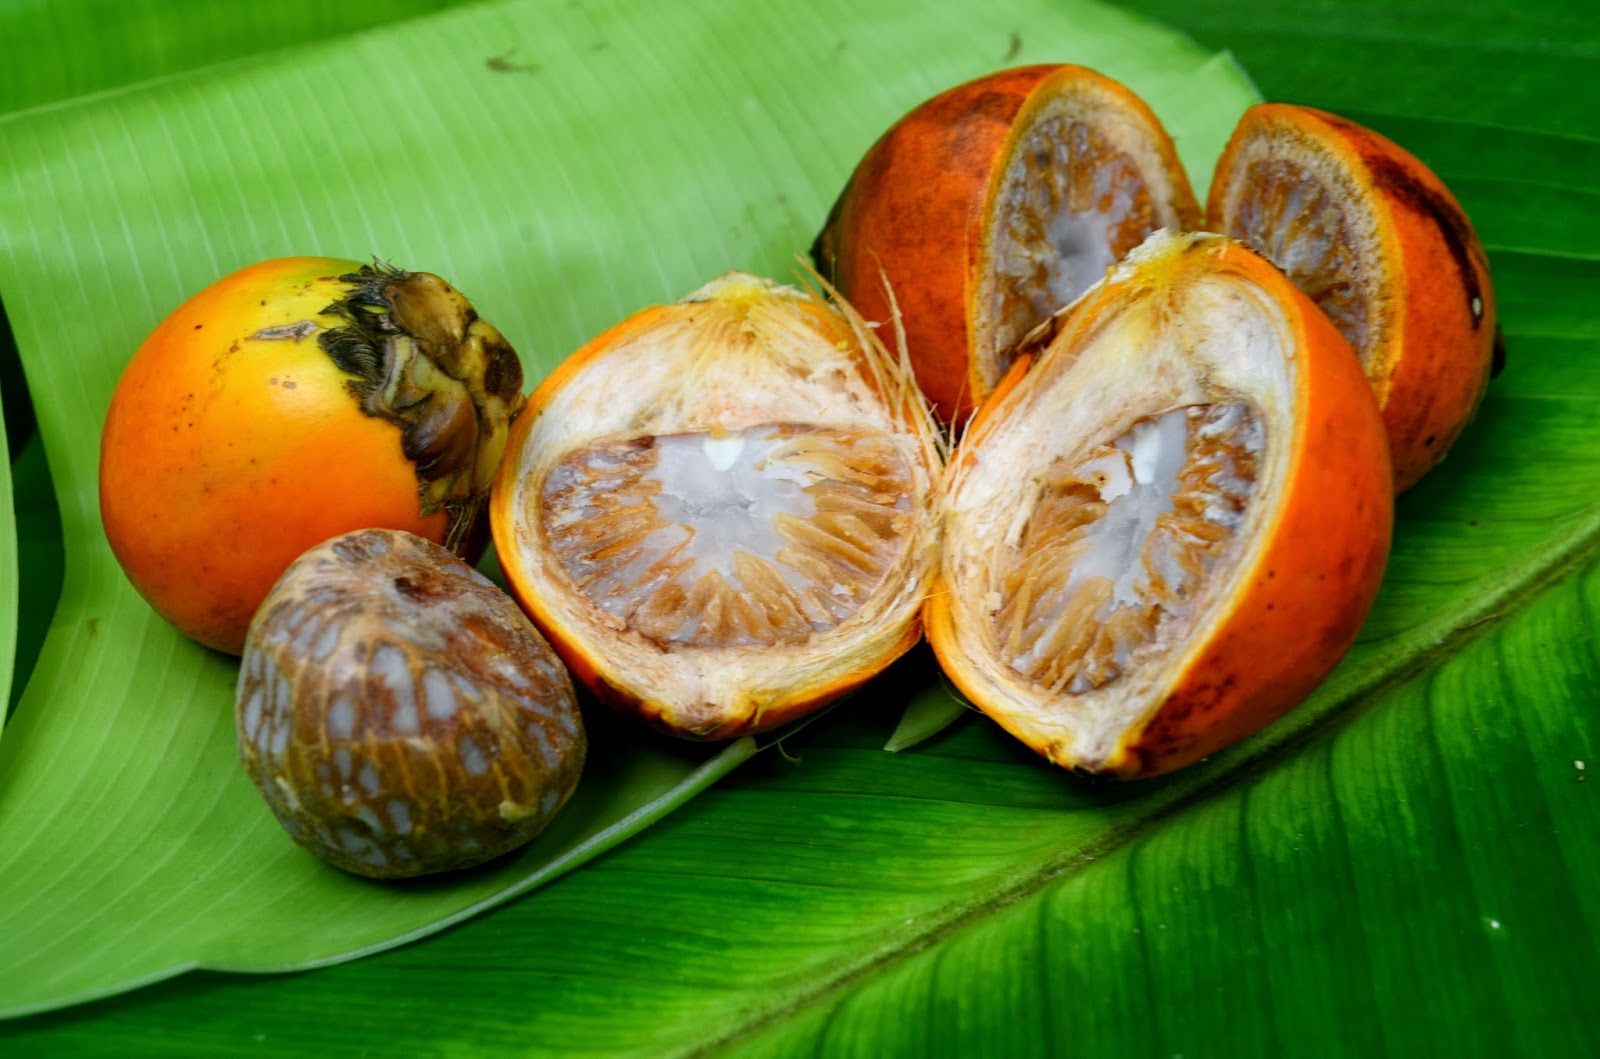 betel nut Betel nuts, areca catechu are the nut which supports for antioxidant, antihelmintic, sedative, antidepressant, antioxidant and astringent activity.